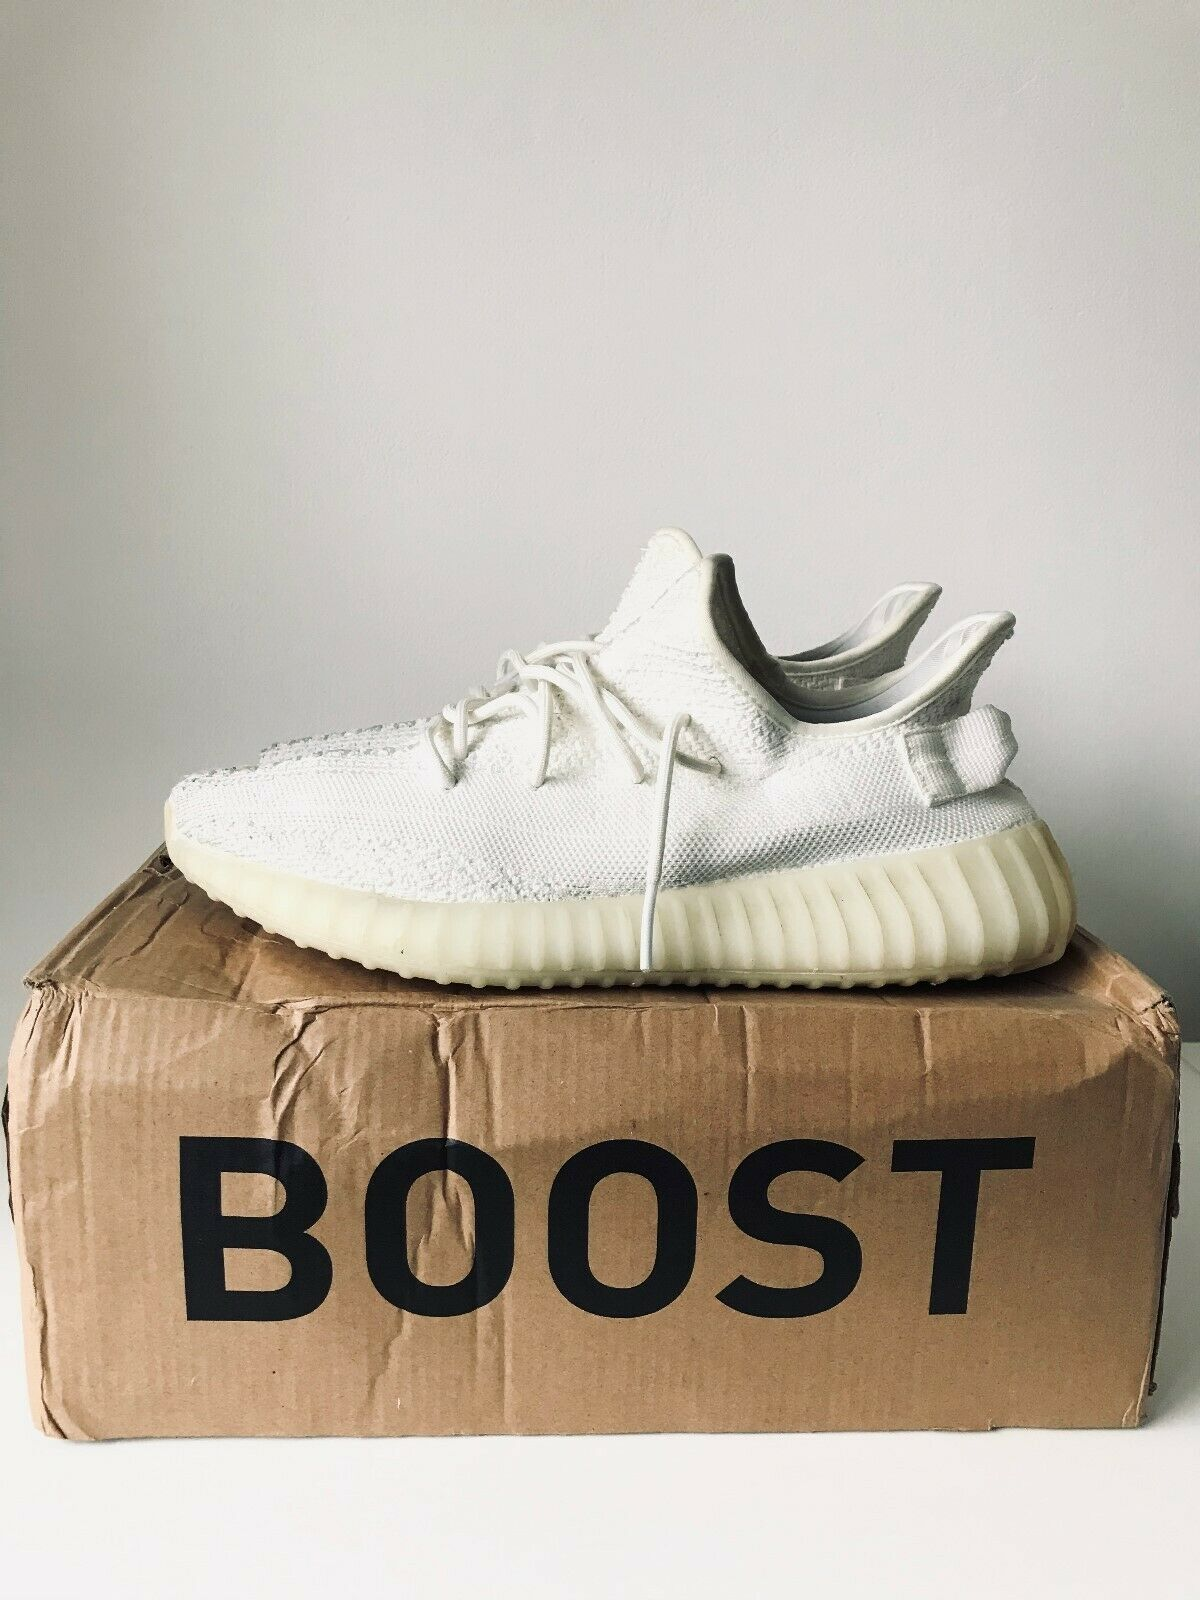 Baskets adidas yeezy boost 350 v2 taille 43 1/3